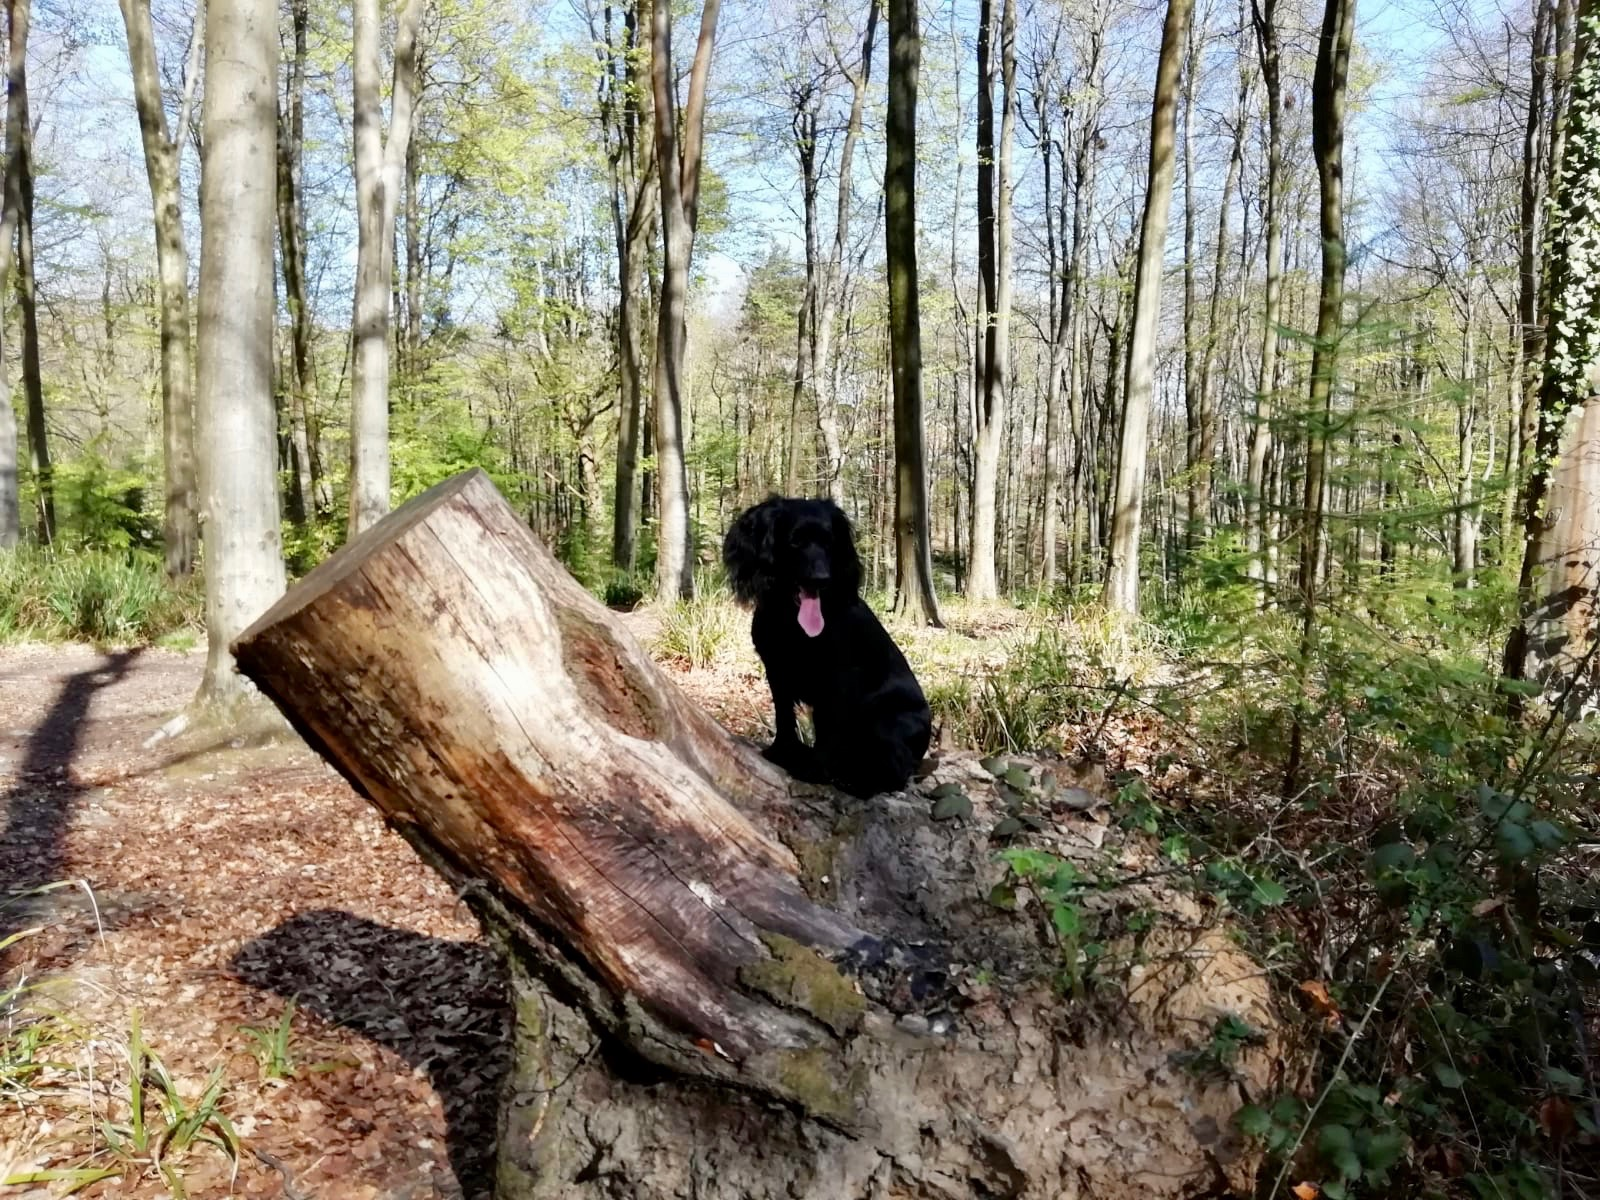 Poppy the spaniel on a log in the forest